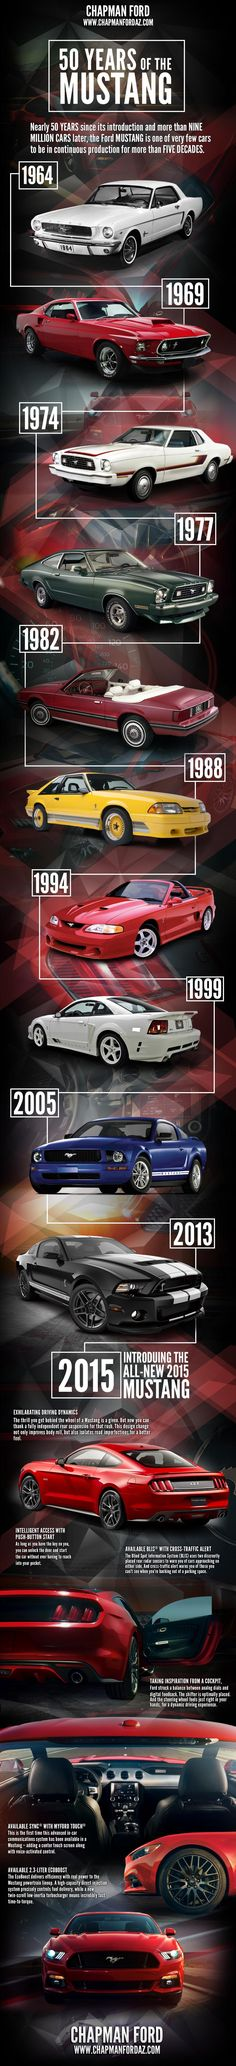 50 Years of the Ford Mustang Infographic Now, that's what I'm talking about.